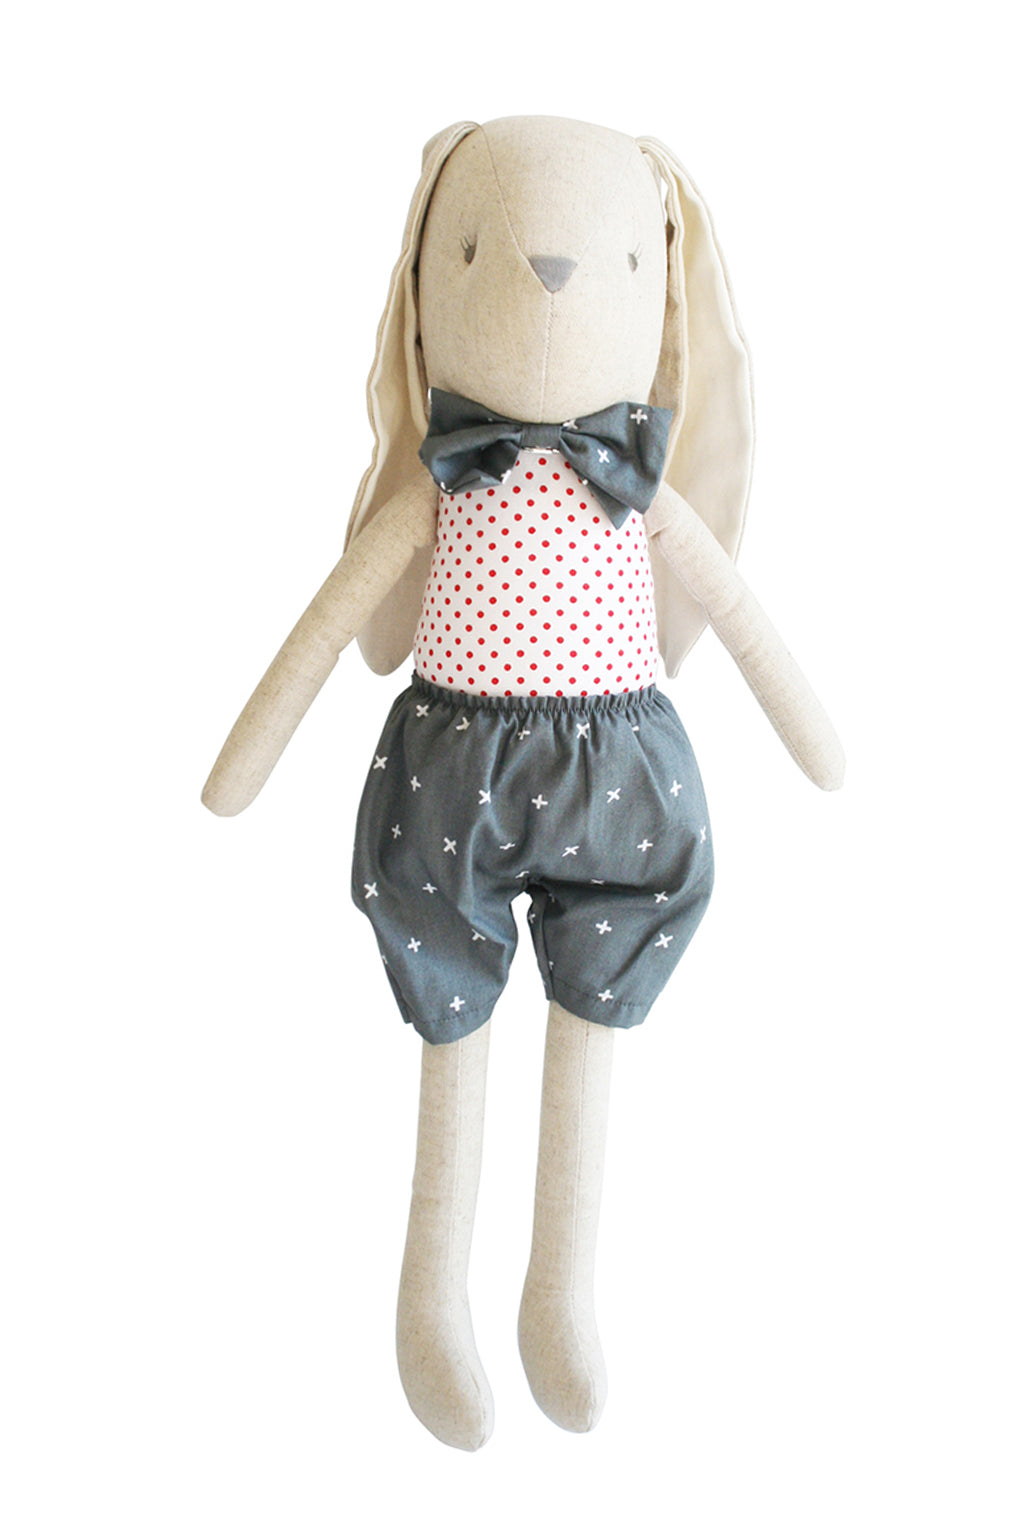 Alimrose-Bunny Linen Louie Doll 55cm Grey-Mott and Mulberry